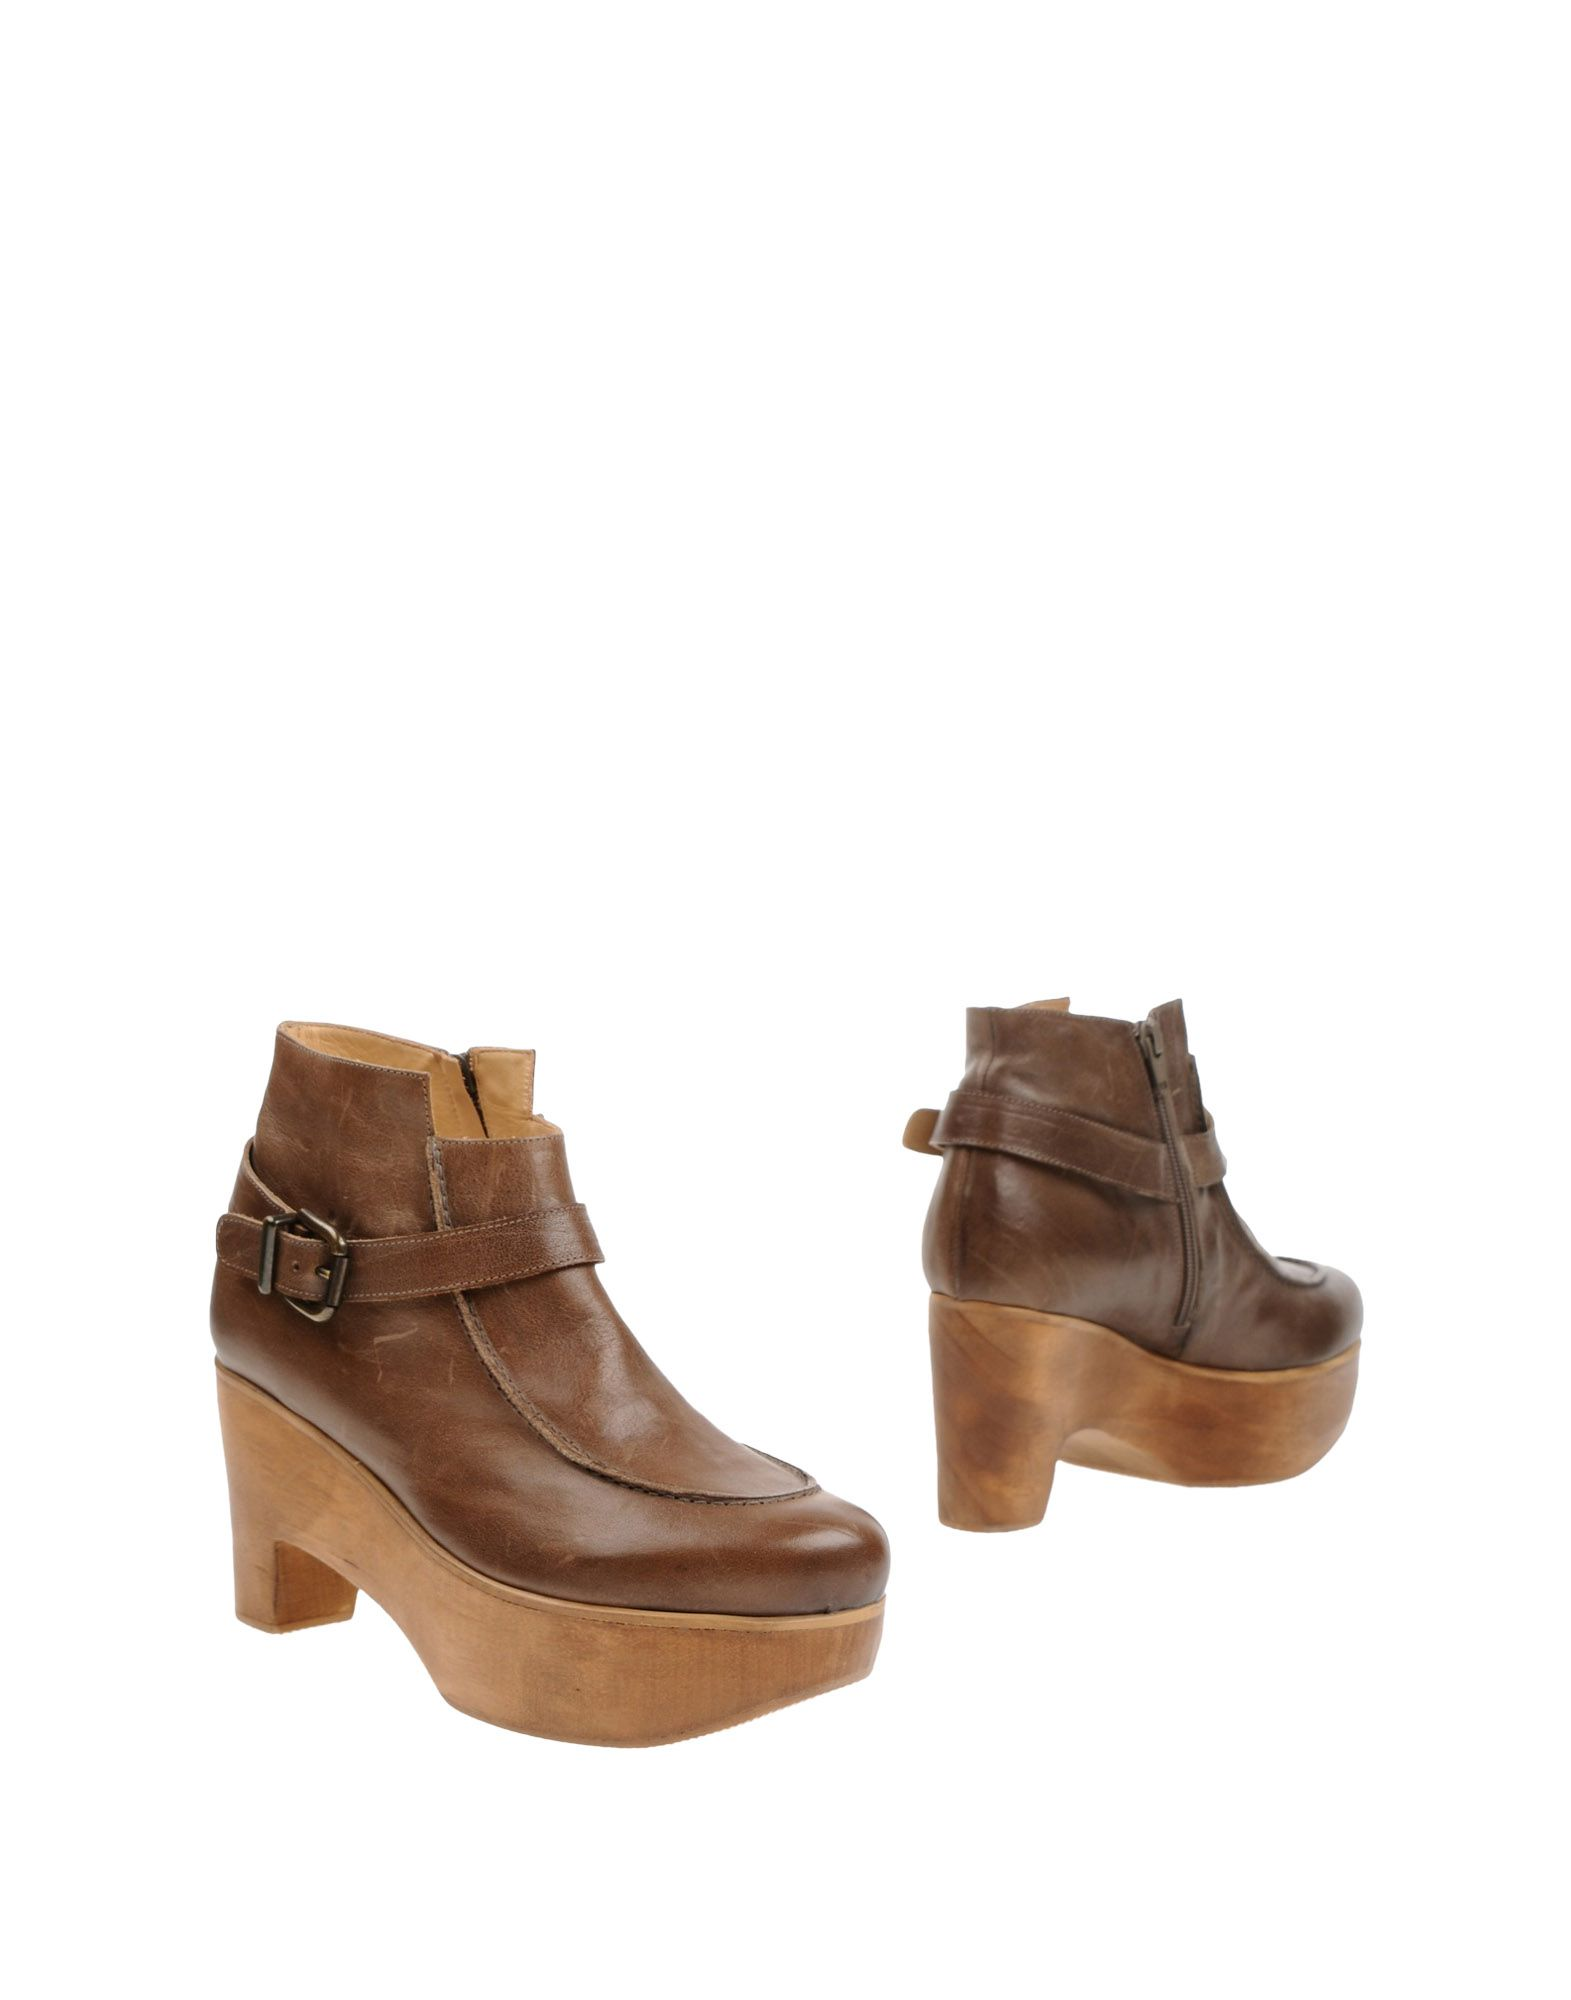 Bottine Ellen Verbeek Femme - Bottines Ellen Verbeek sur